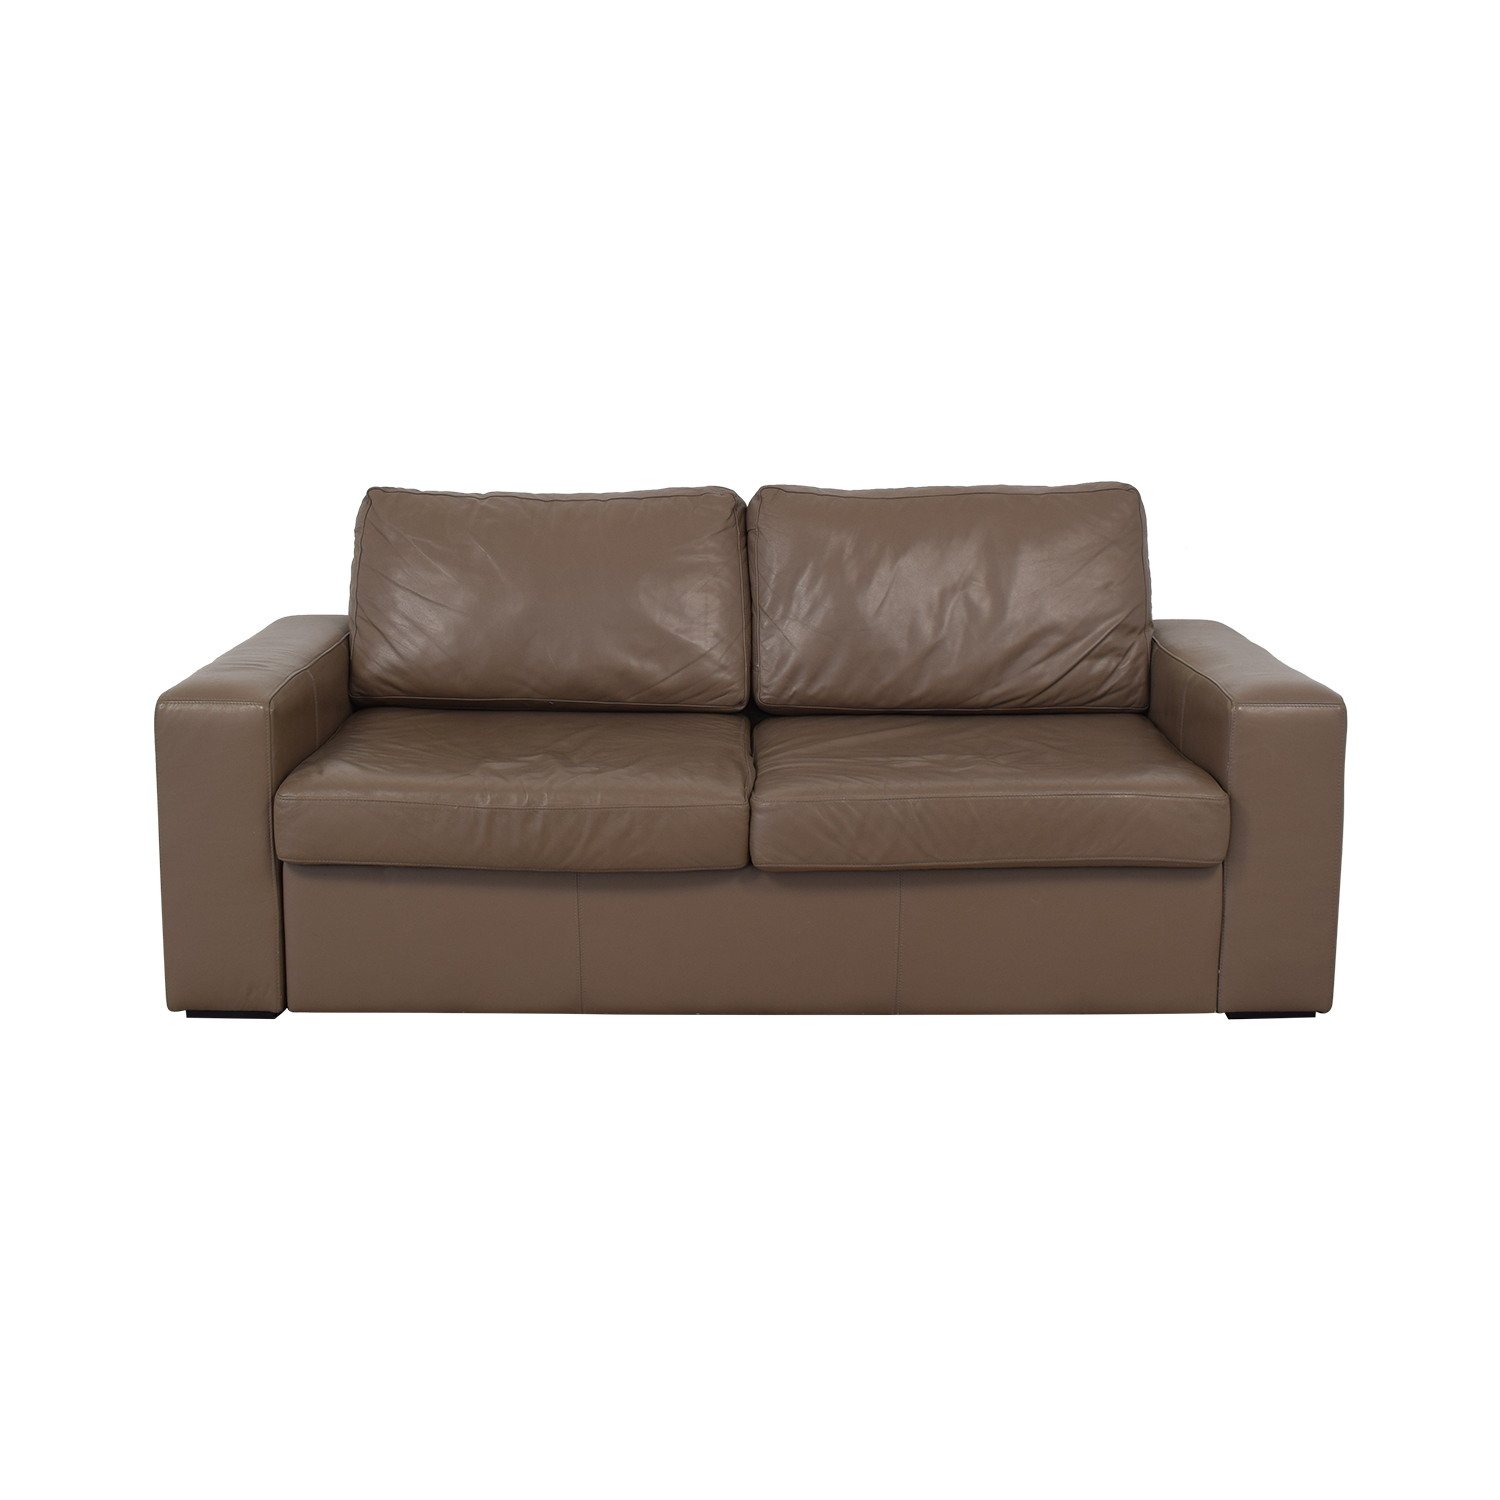 BoConcept BoConcept Leather Sleeper Sofa coupon